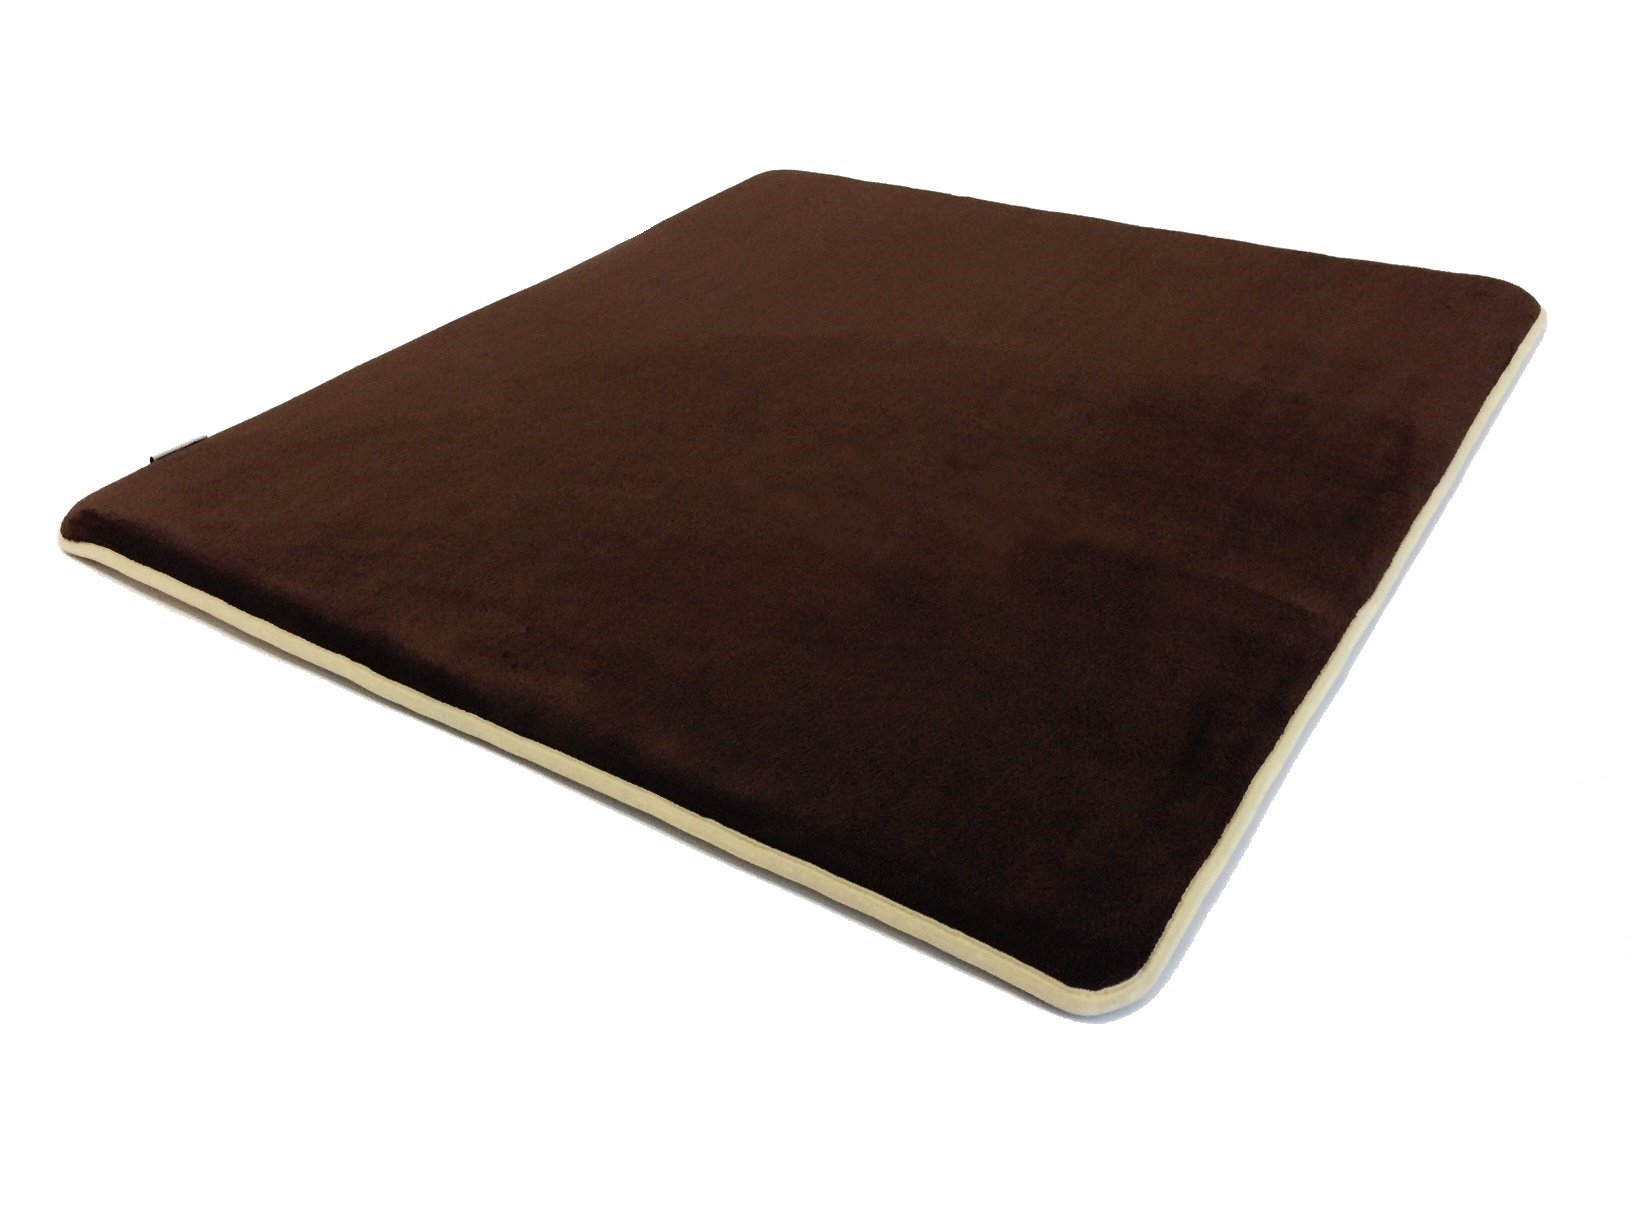 40''x35''x1.25'' Memory Foam Coral Fleece Standard Mat Bed with Waterproof Anti Slip Bottom for Puppies and Dogs of all sizes: Small, Medium and Large (Brown)